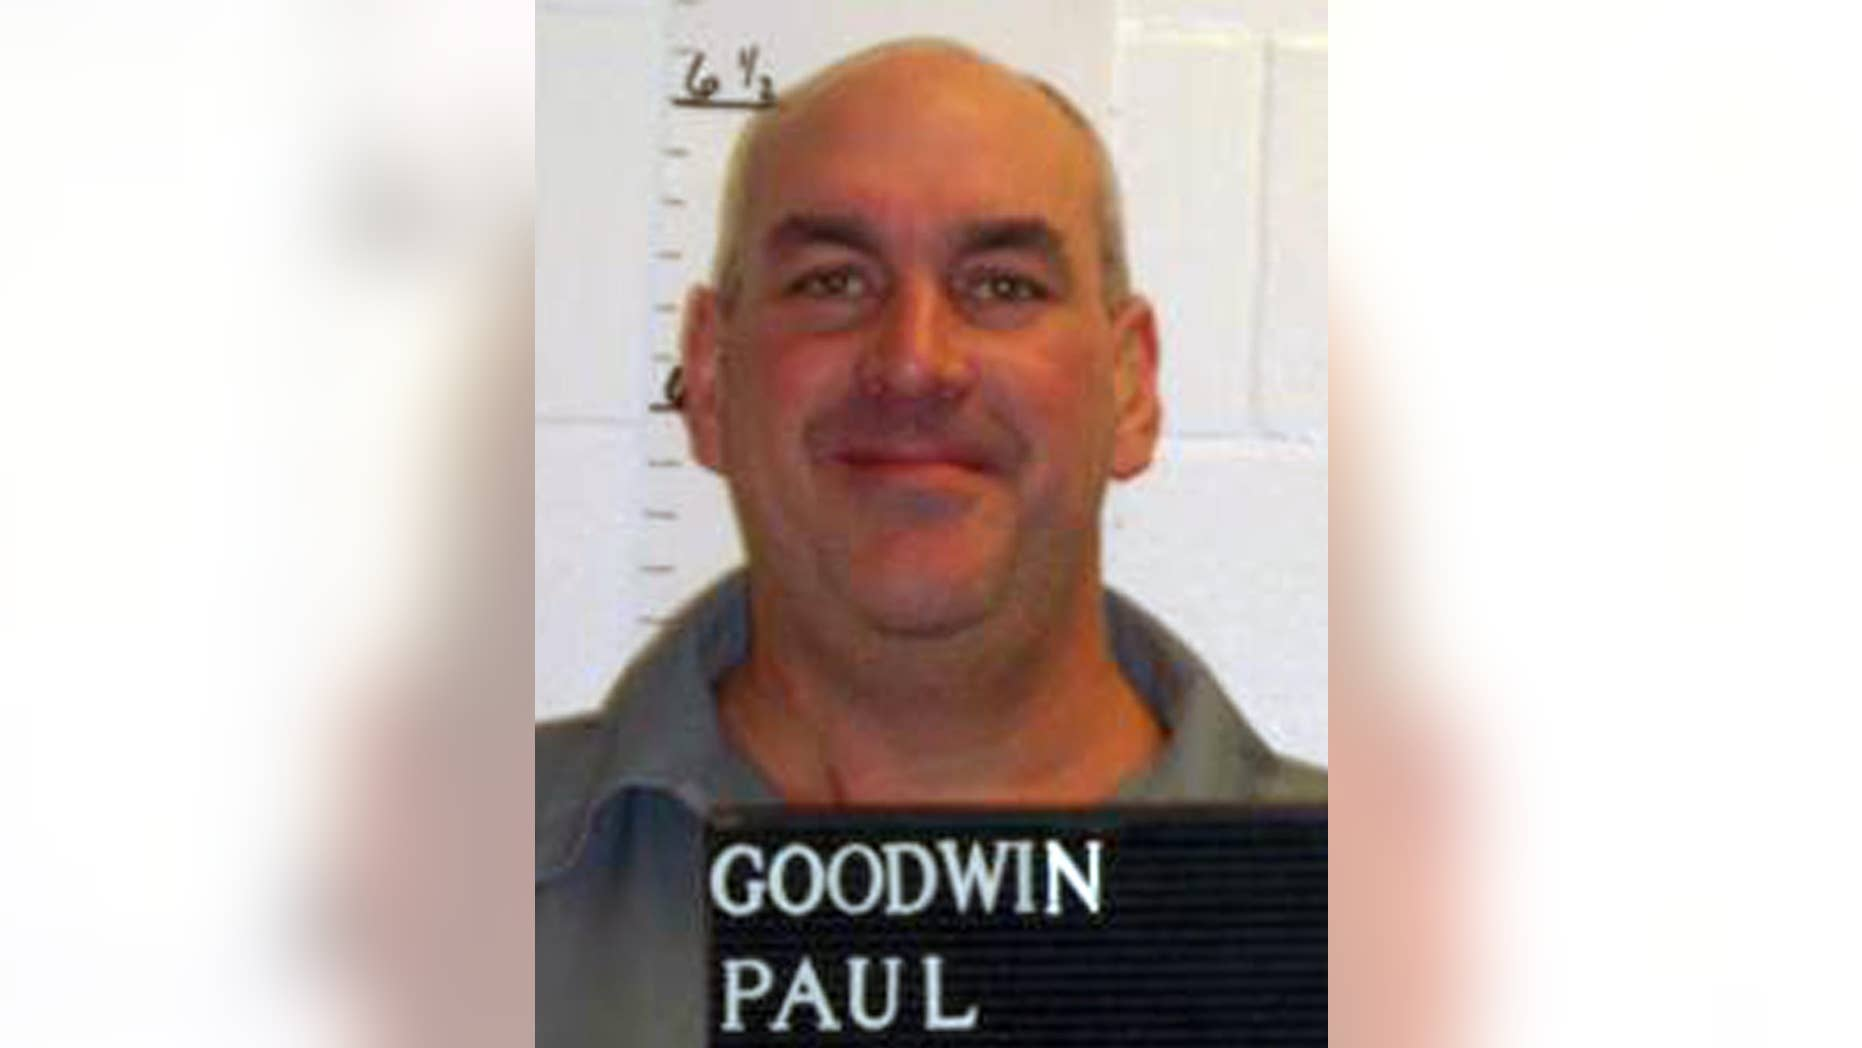 In this Feb. 10, 2014 photo provided by the Missouri Department of Corrections is Paul Goodwin who was convicted of killing a 63-year-old St. Louis County woman with a hammer in 1998. (AP Photo/Missouri Department of Corrections)